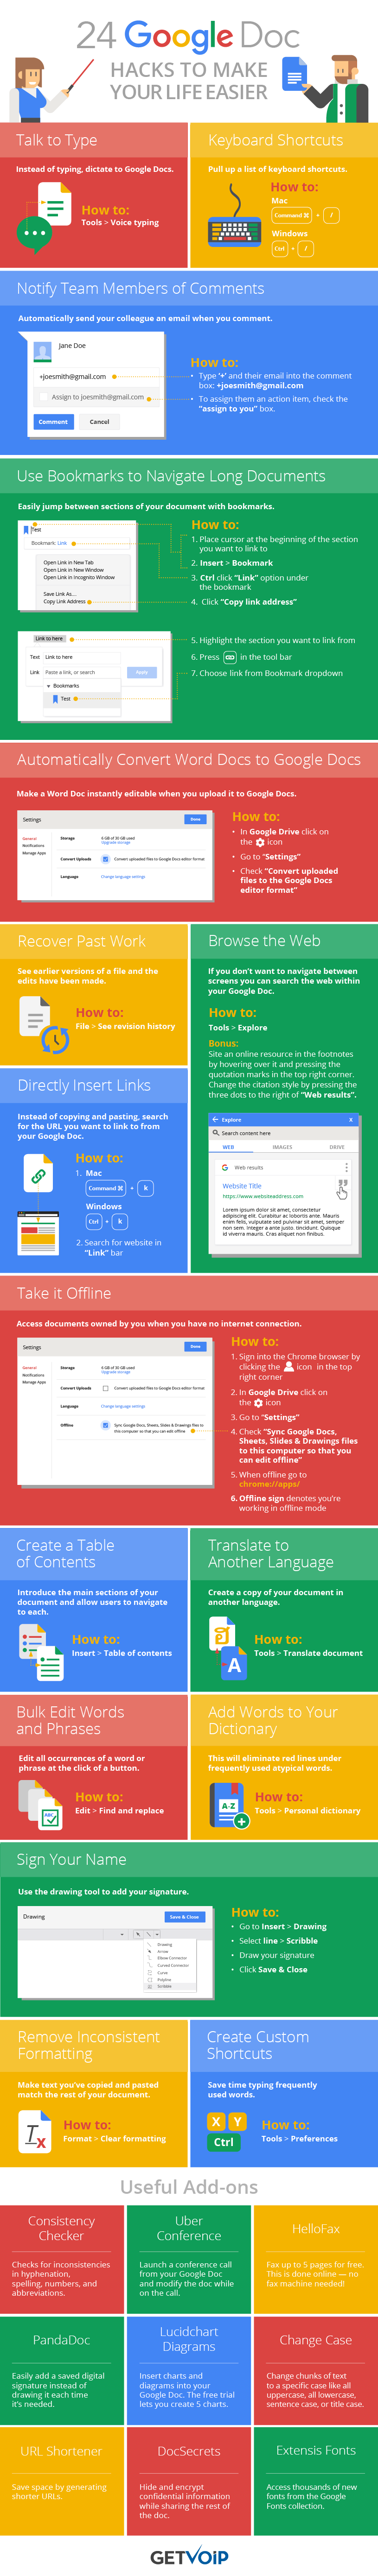 24 Google Doc Hacks to Make Your Life Easier [Infographic] | Social Media Today